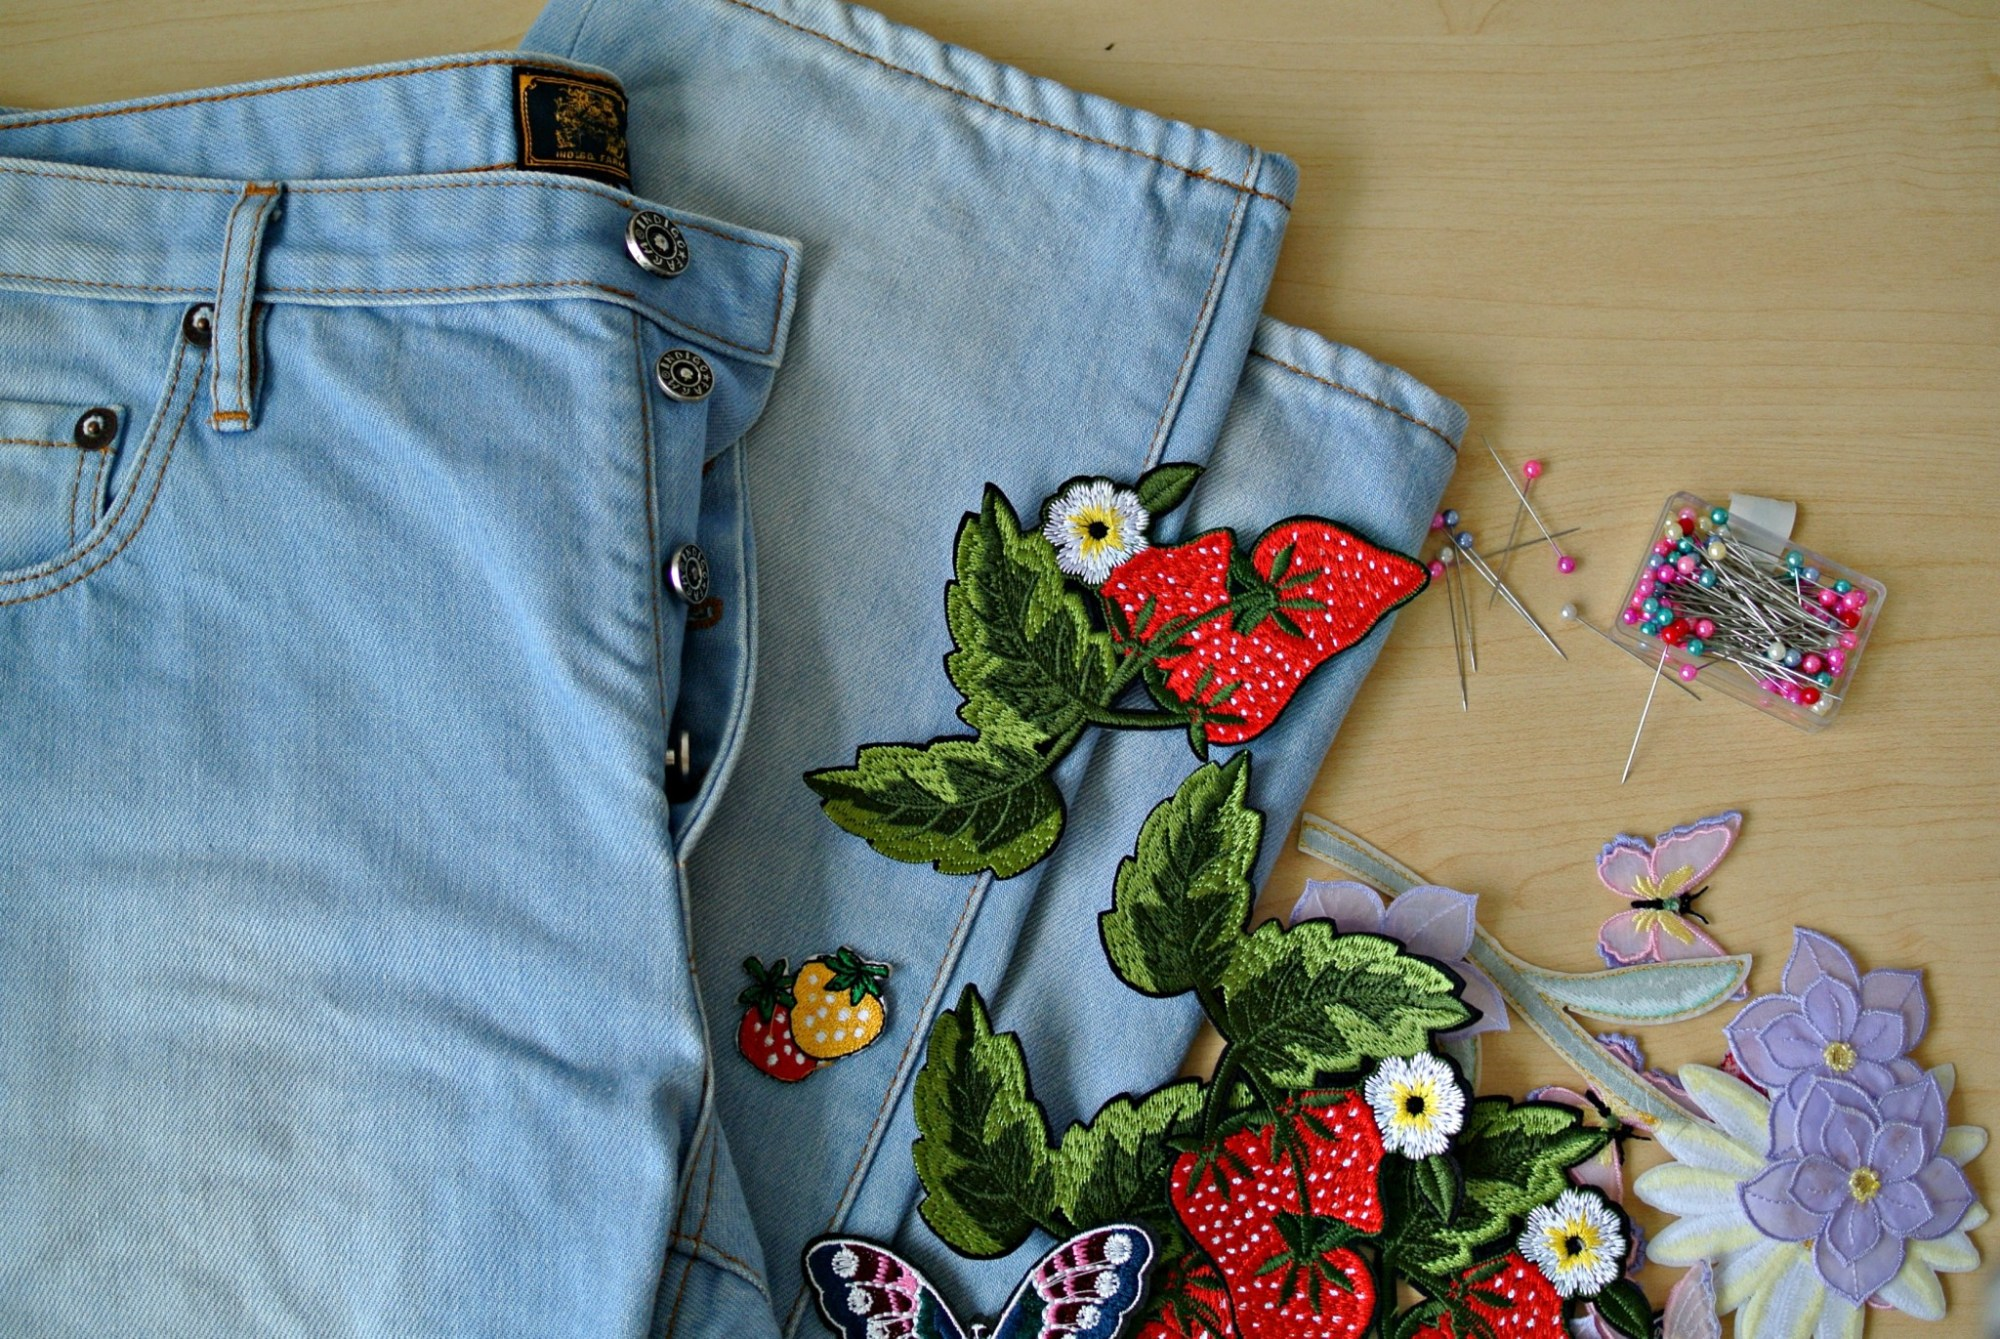 DIY Gucci Inspired Jeans 9